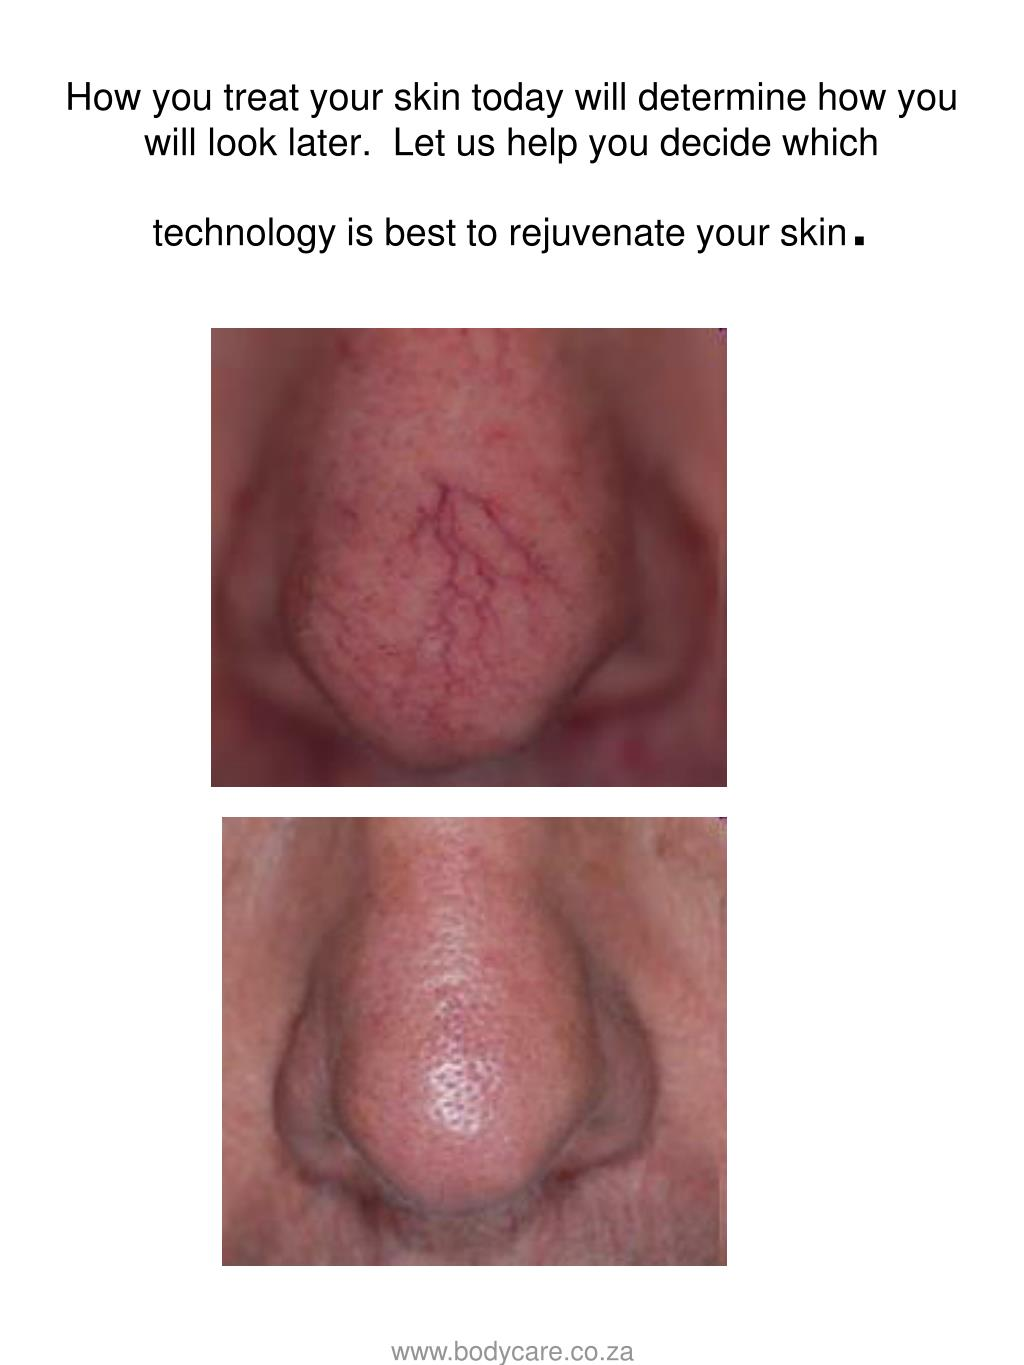 How you treat your skin today will determine how you will look later.  Let us help you decide which technology is best to rejuvenate your skin